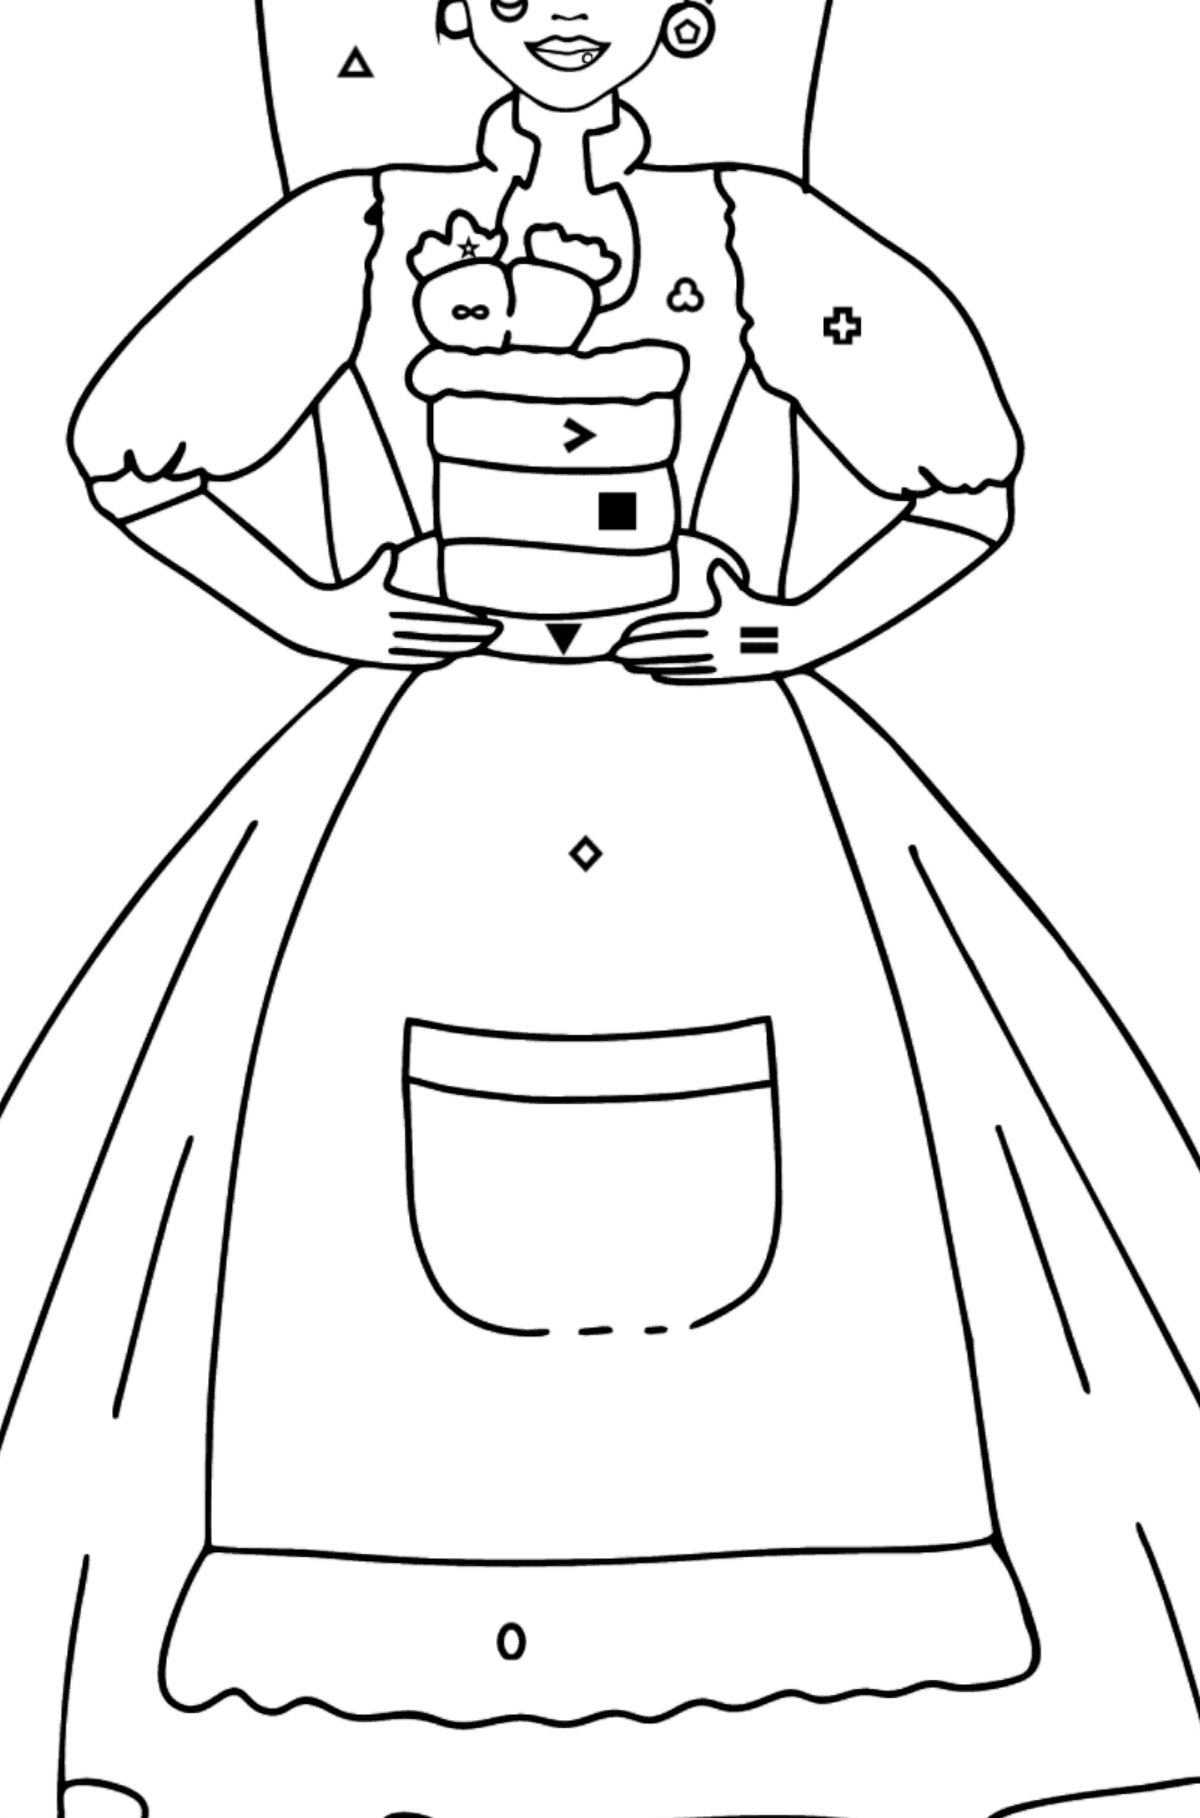 Barbie Doll and Cake coloring page - Coloring by Symbols and Geometric Shapes for Kids